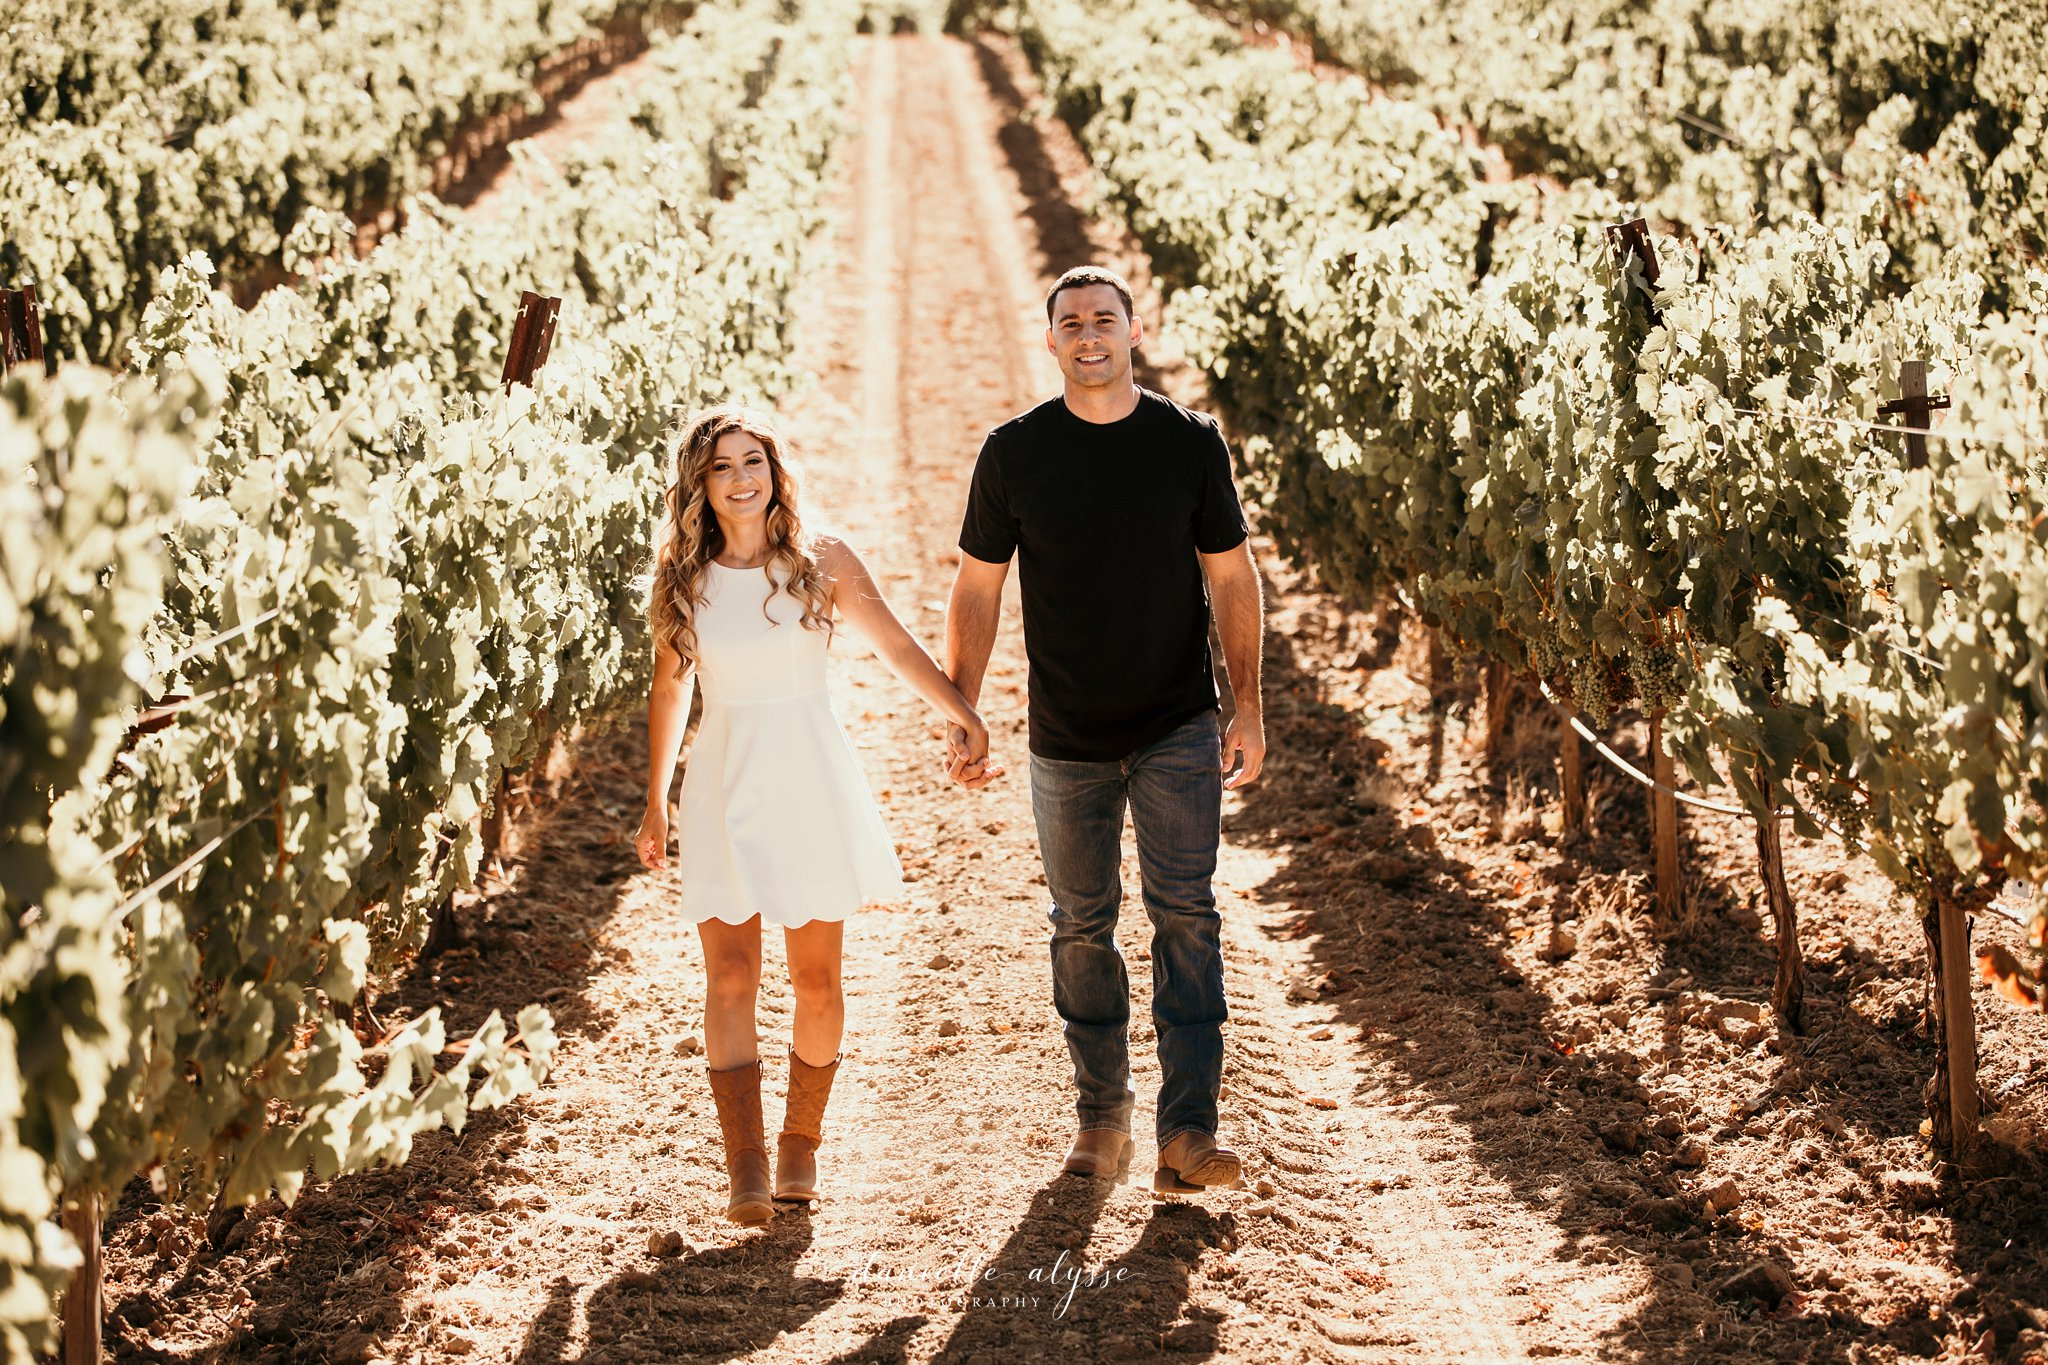 180804_engagement_katie_matt_dillon_beach_napa_danielle_alysse_photography_blog_17_WEB.jpg